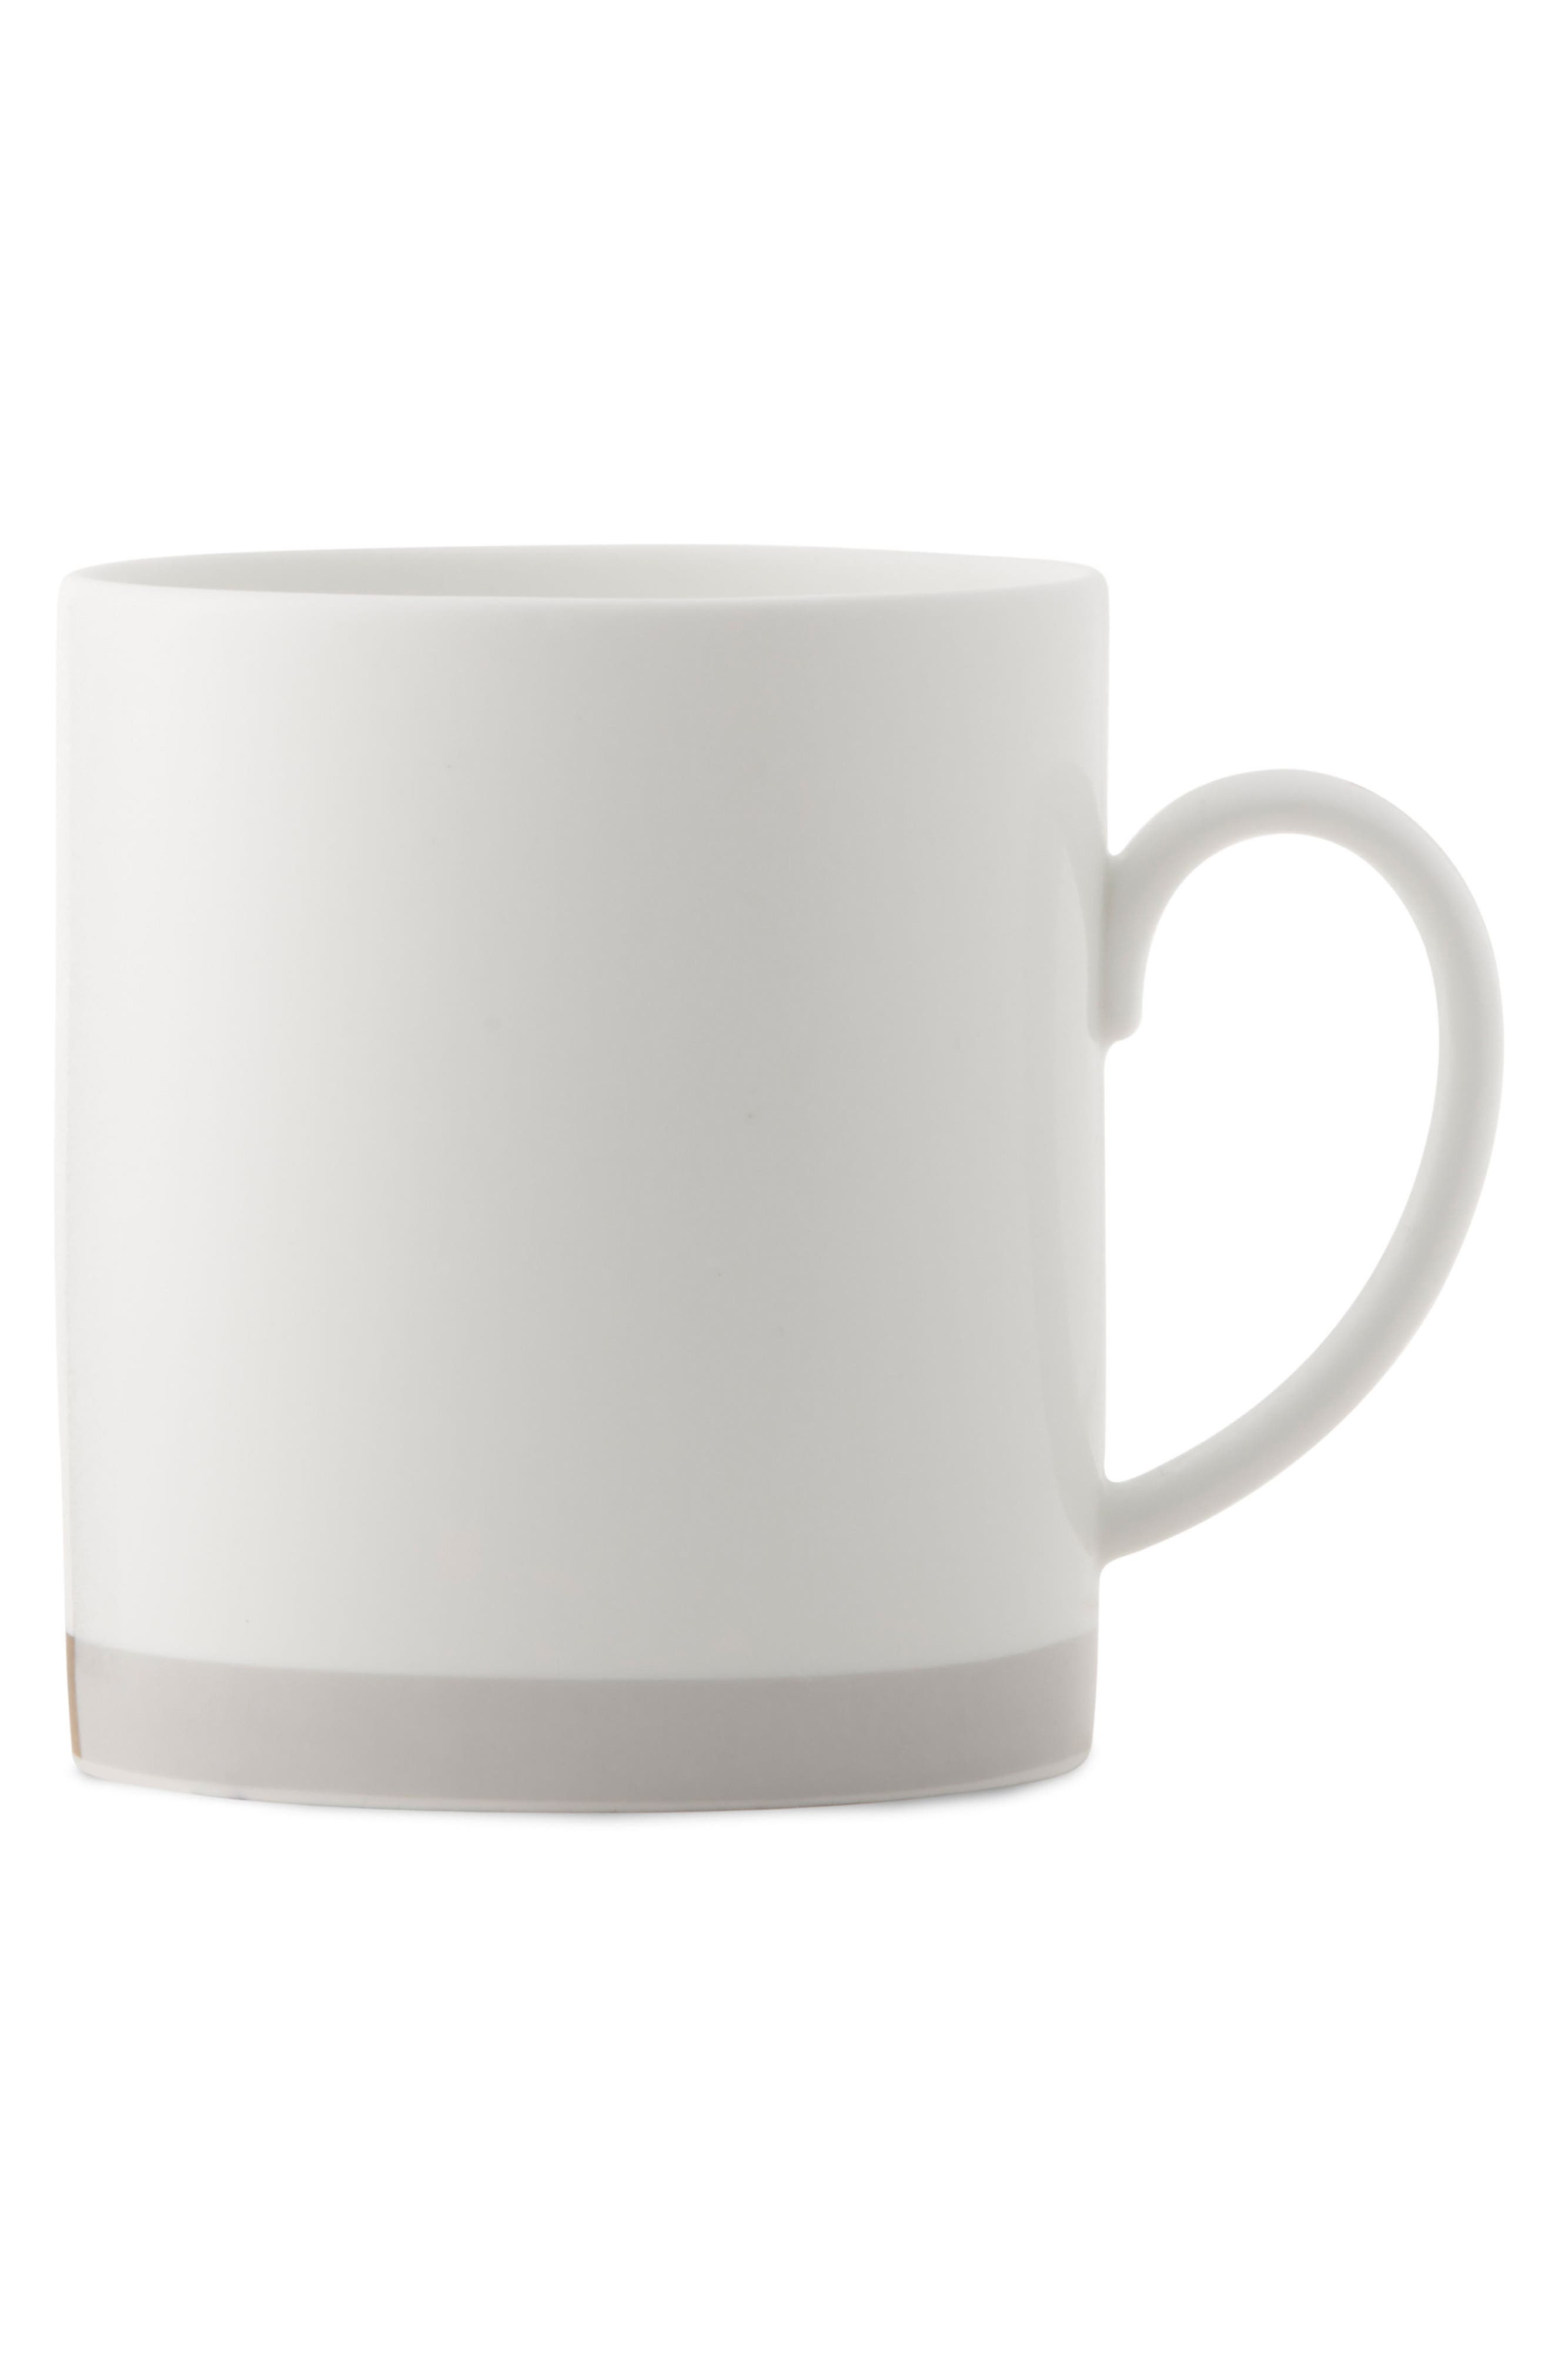 x Wedgewood Castillon Mug,                         Main,                         color, 100